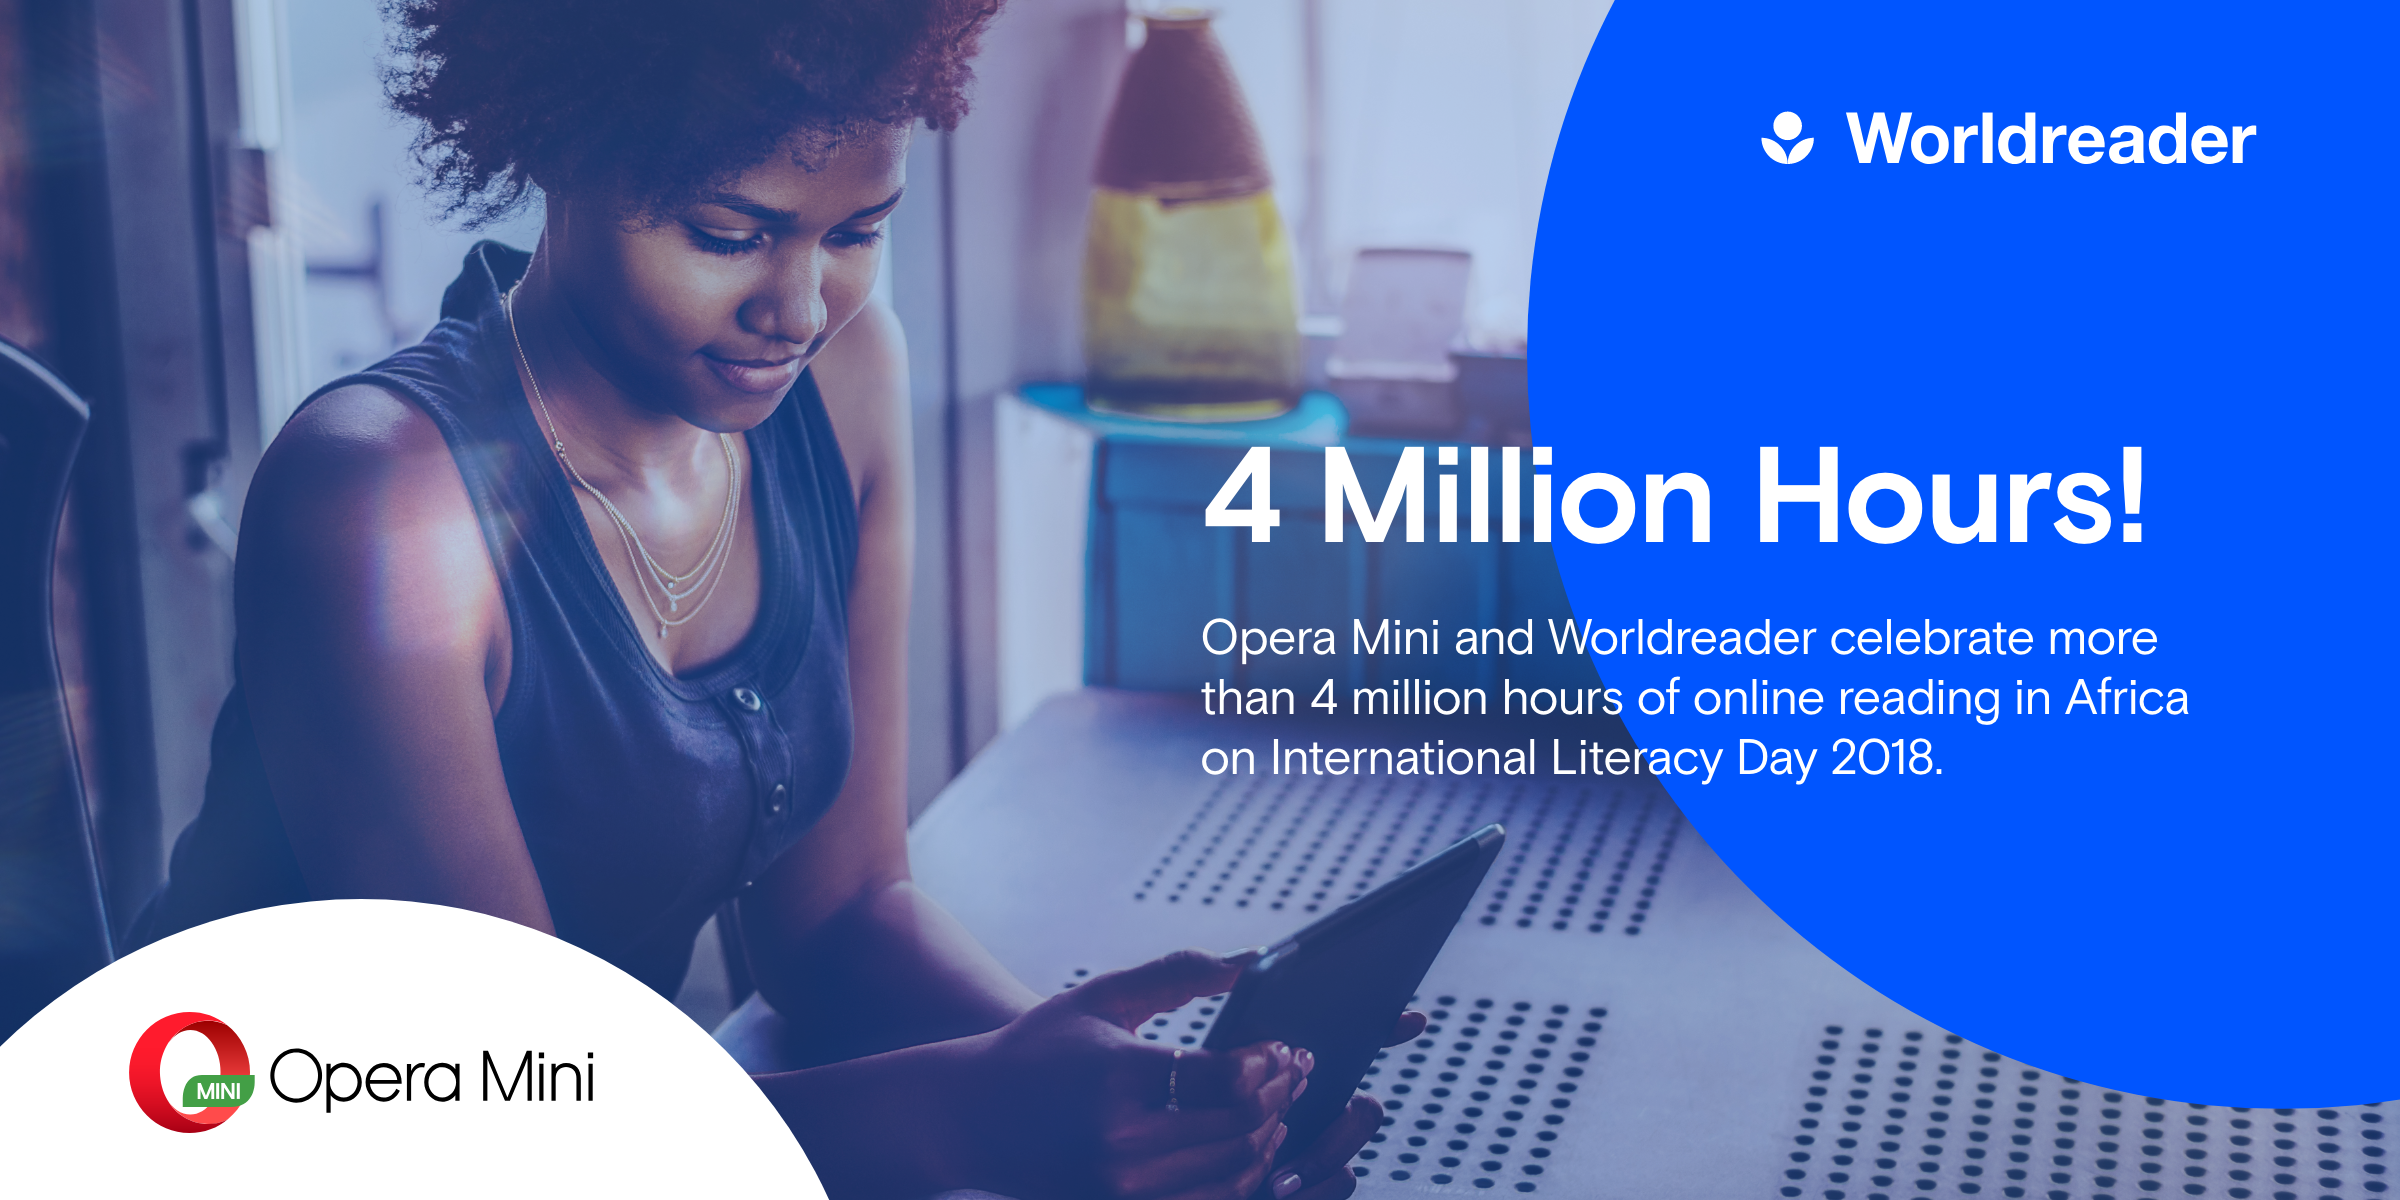 Opera Mini and Worldreader celebrate more than 4 million hours of online reading in Africa